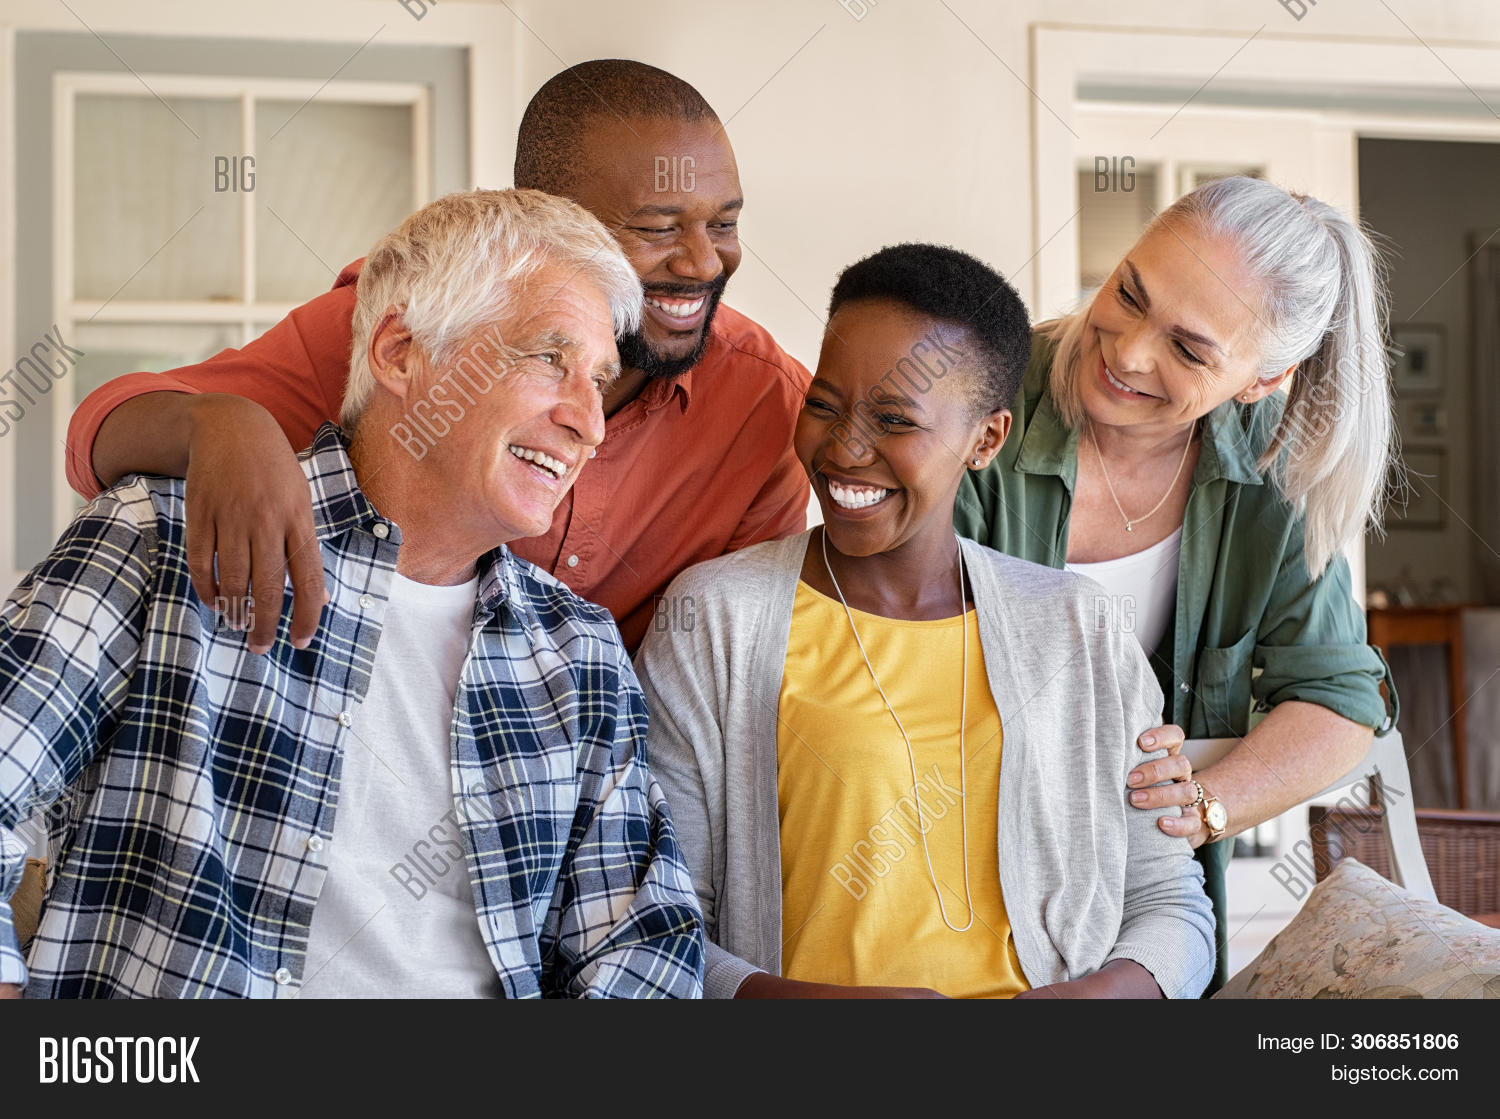 60s,70s,active seniors,african,american,black,carefree,cheerful,communication,conversation,couple,couples,elderly,embrace,enjoy,four,friend,friendship,fun,generation,group,happy,home,joy,laugh,laughing people,leisure,love,man,mature,mid adult man,mid adult woman,middle aged couple,multi ethnic group,multiethnic,old man,people,retired,retired couple,senior,senior couple,senior friends,senior man,seniors,sitting,smile,talk,together,toothy smile,woman